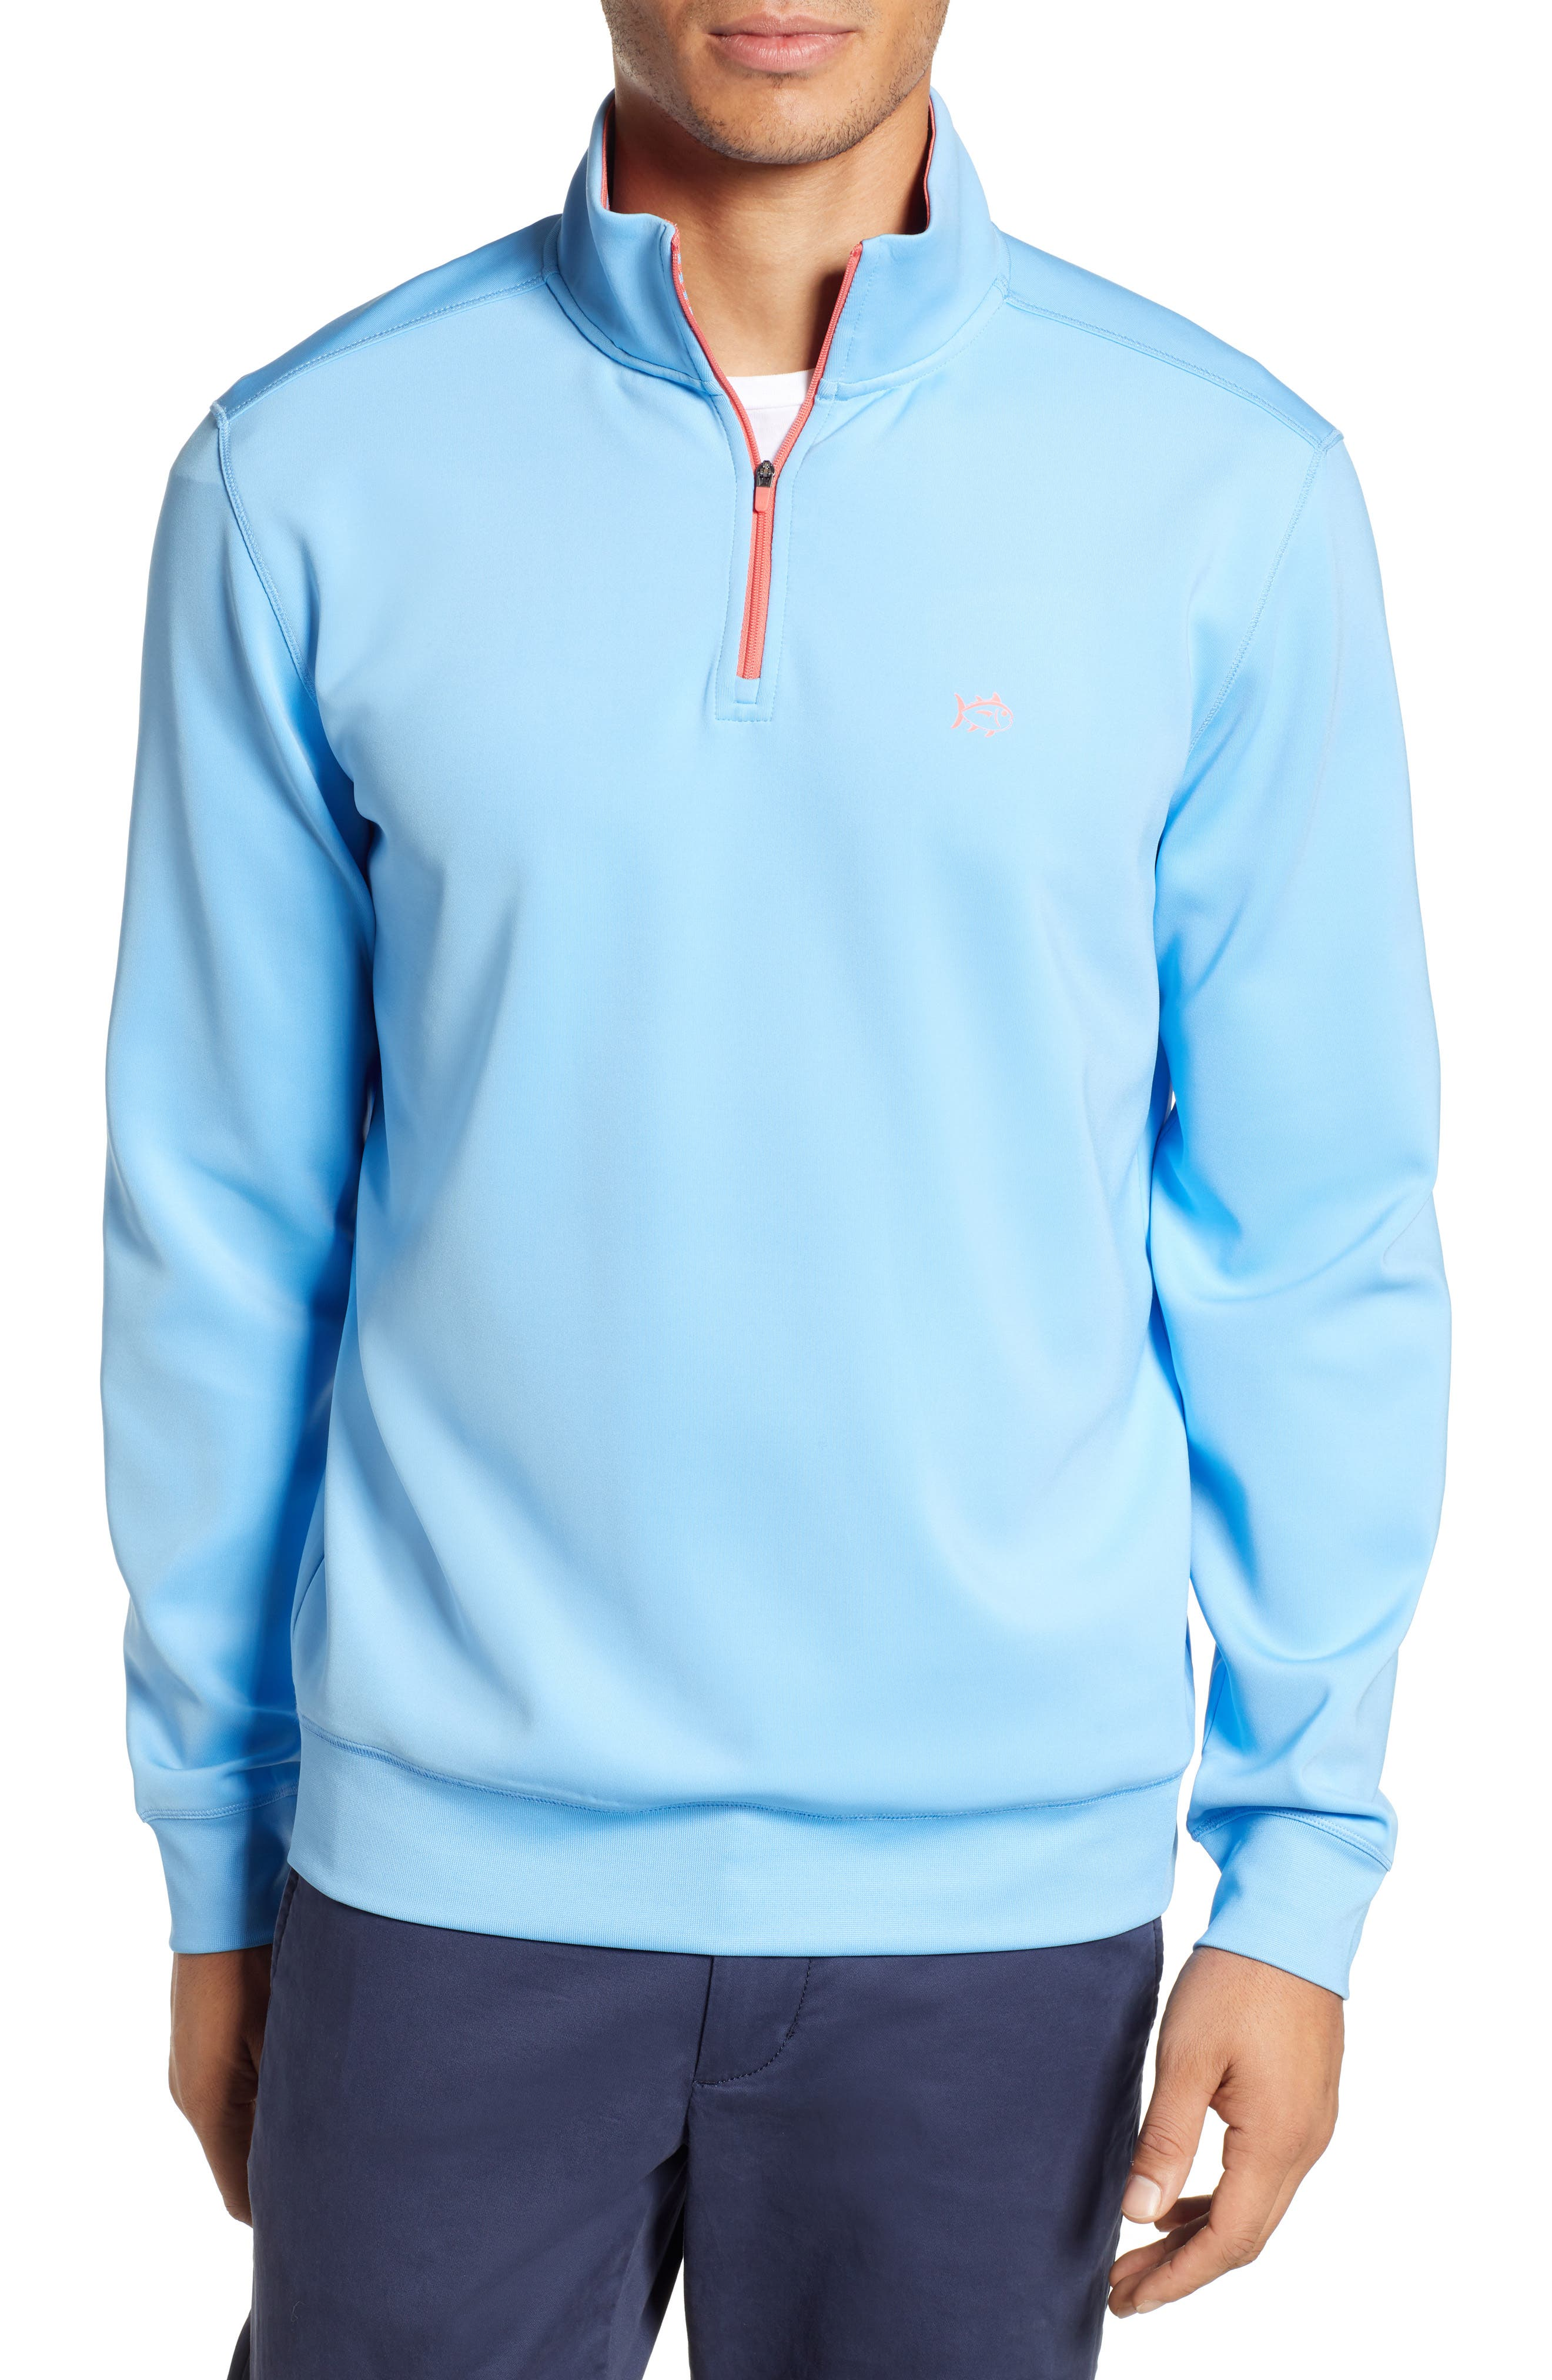 SOUTHERN TIDE Breakwater Performance Quarter Zip Pullover in Ocean Channel